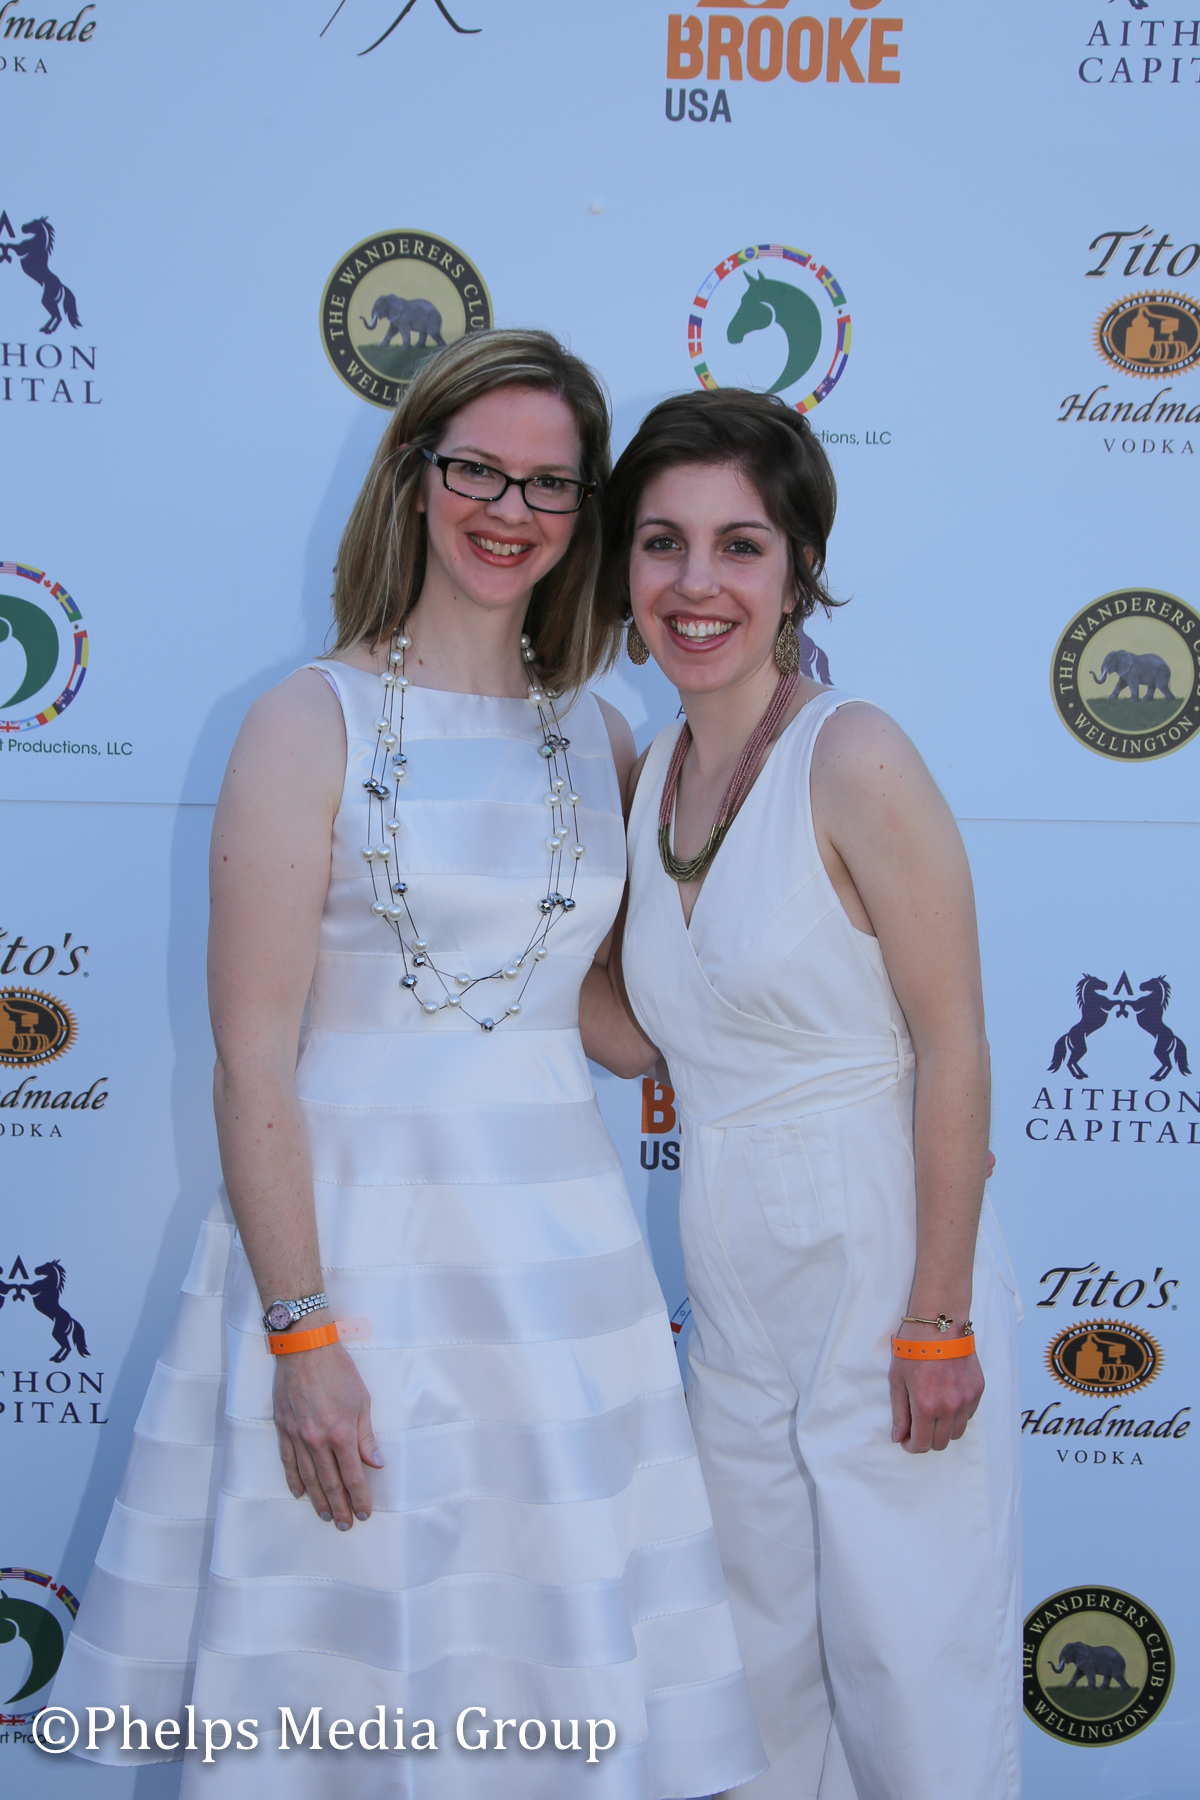 Amy Cairy and Alessandra Mele; Nic Roldan's 2nd Annual Sunset Polo & White Party, FL, by Phelps Media.jpg